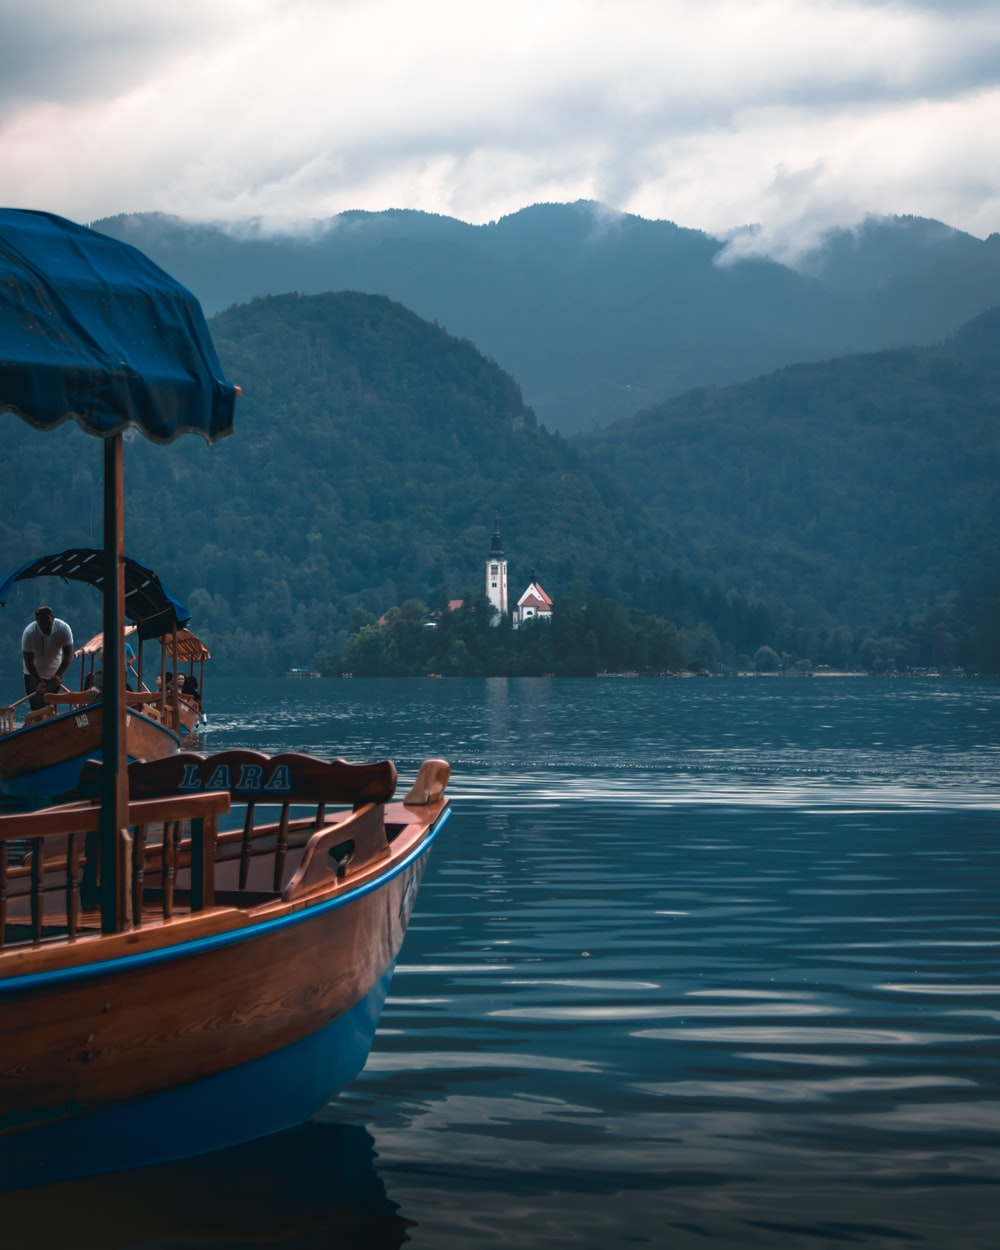 brown and blue wooden boat floating in water